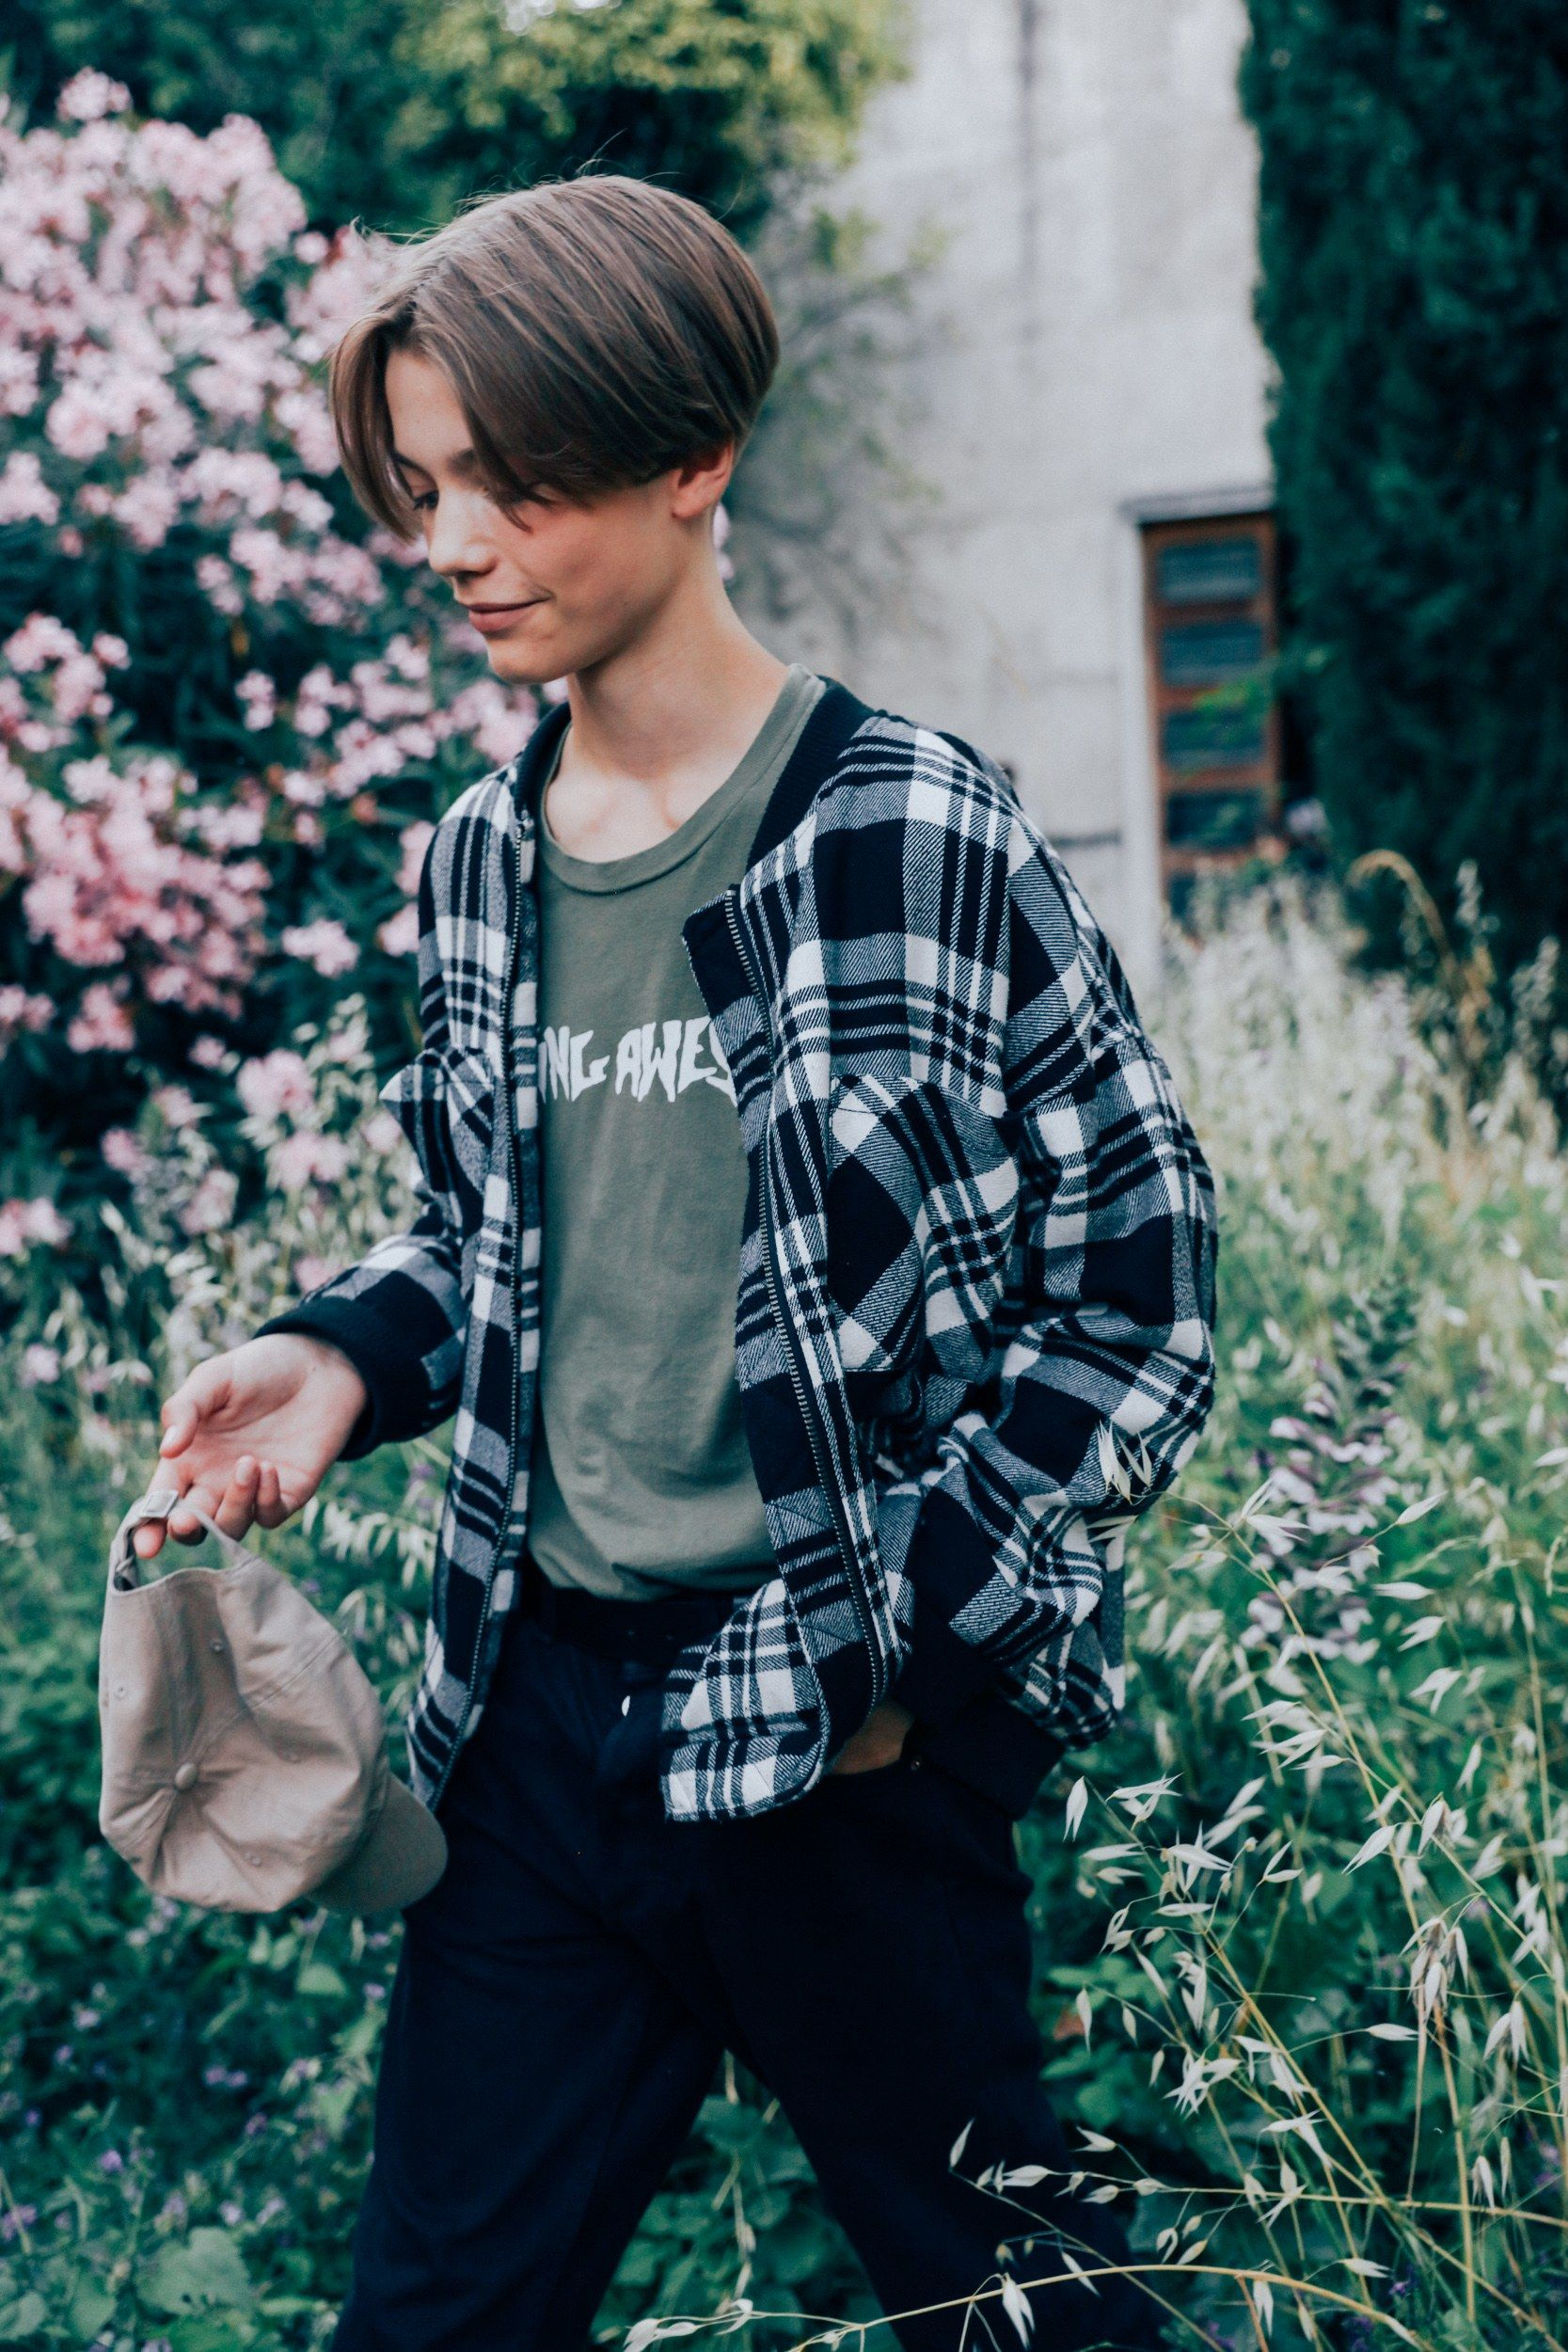 53 ways to ace summer style right now | rocky's style | cool